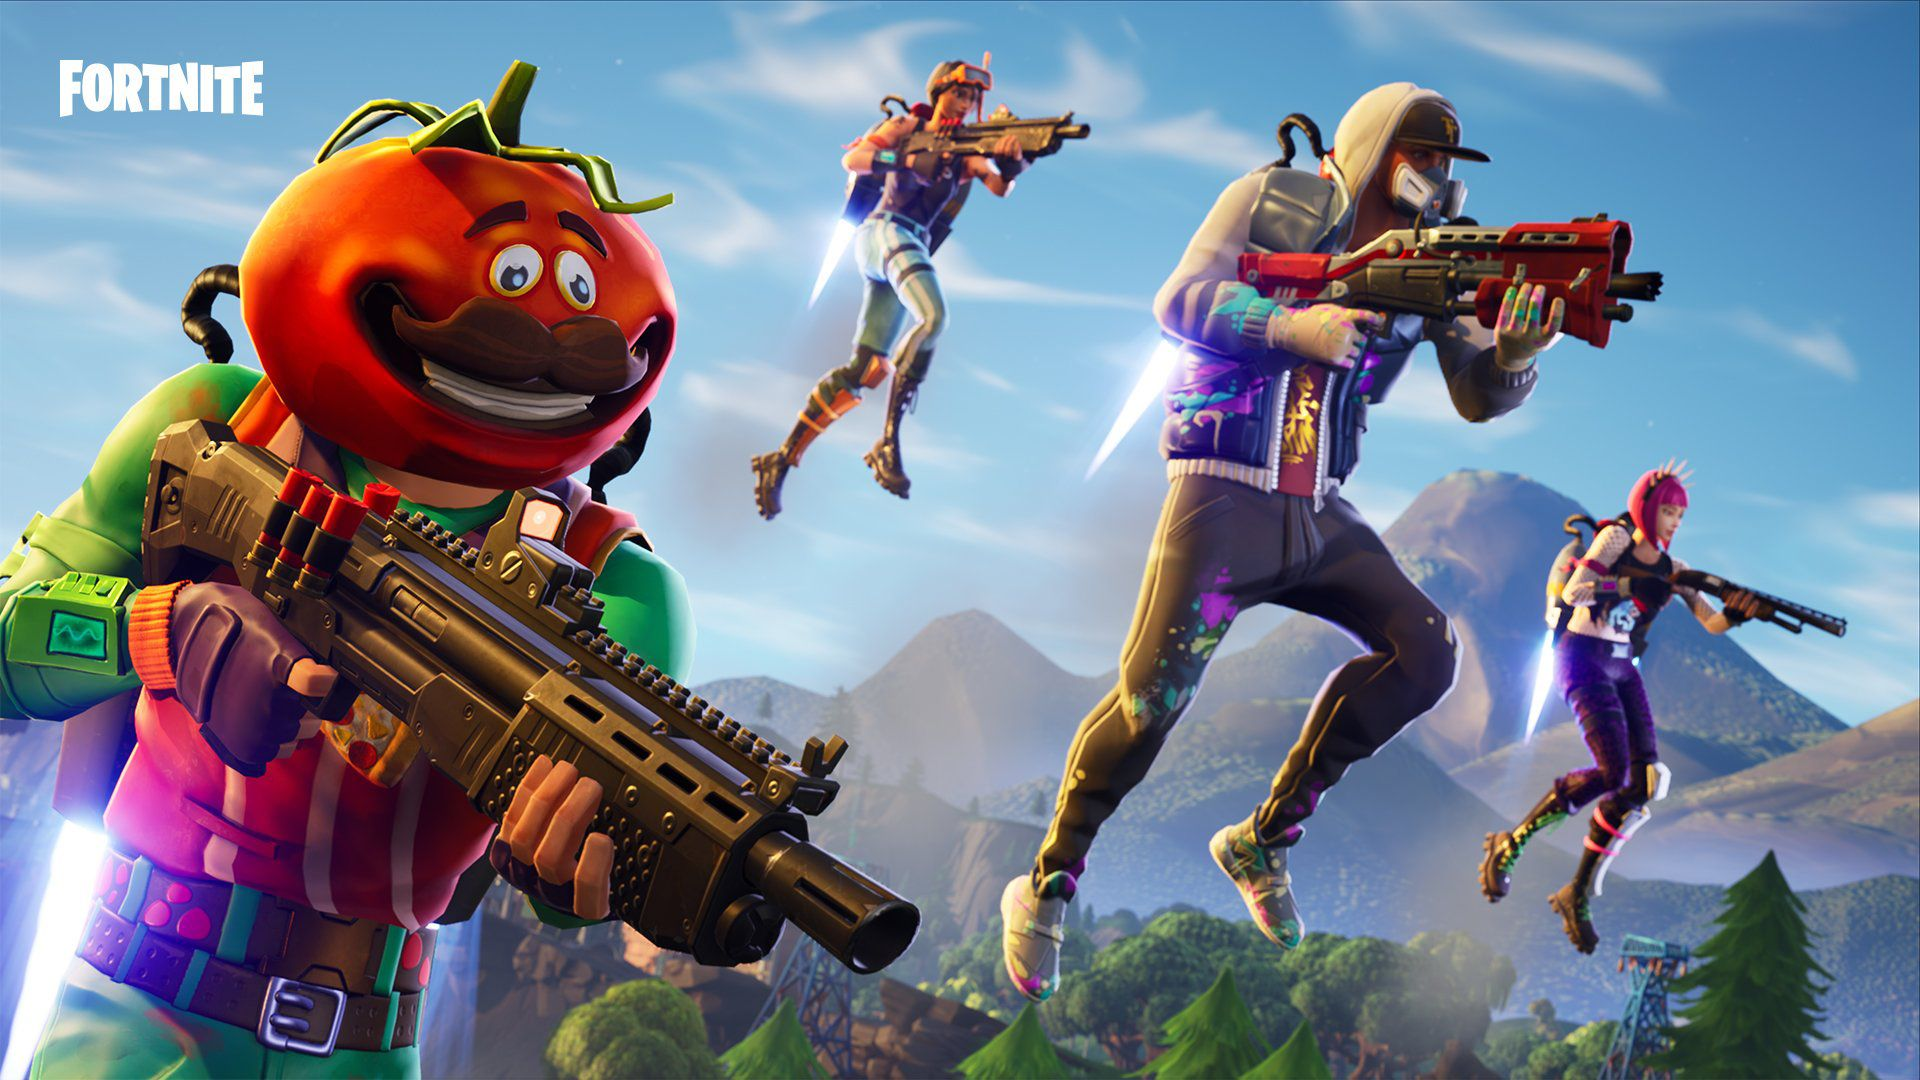 Fortnite High Quality 4k Wallpapers Fortnite Videogame Wallpaper Epic Games Fortnite Epic Games Fortnite